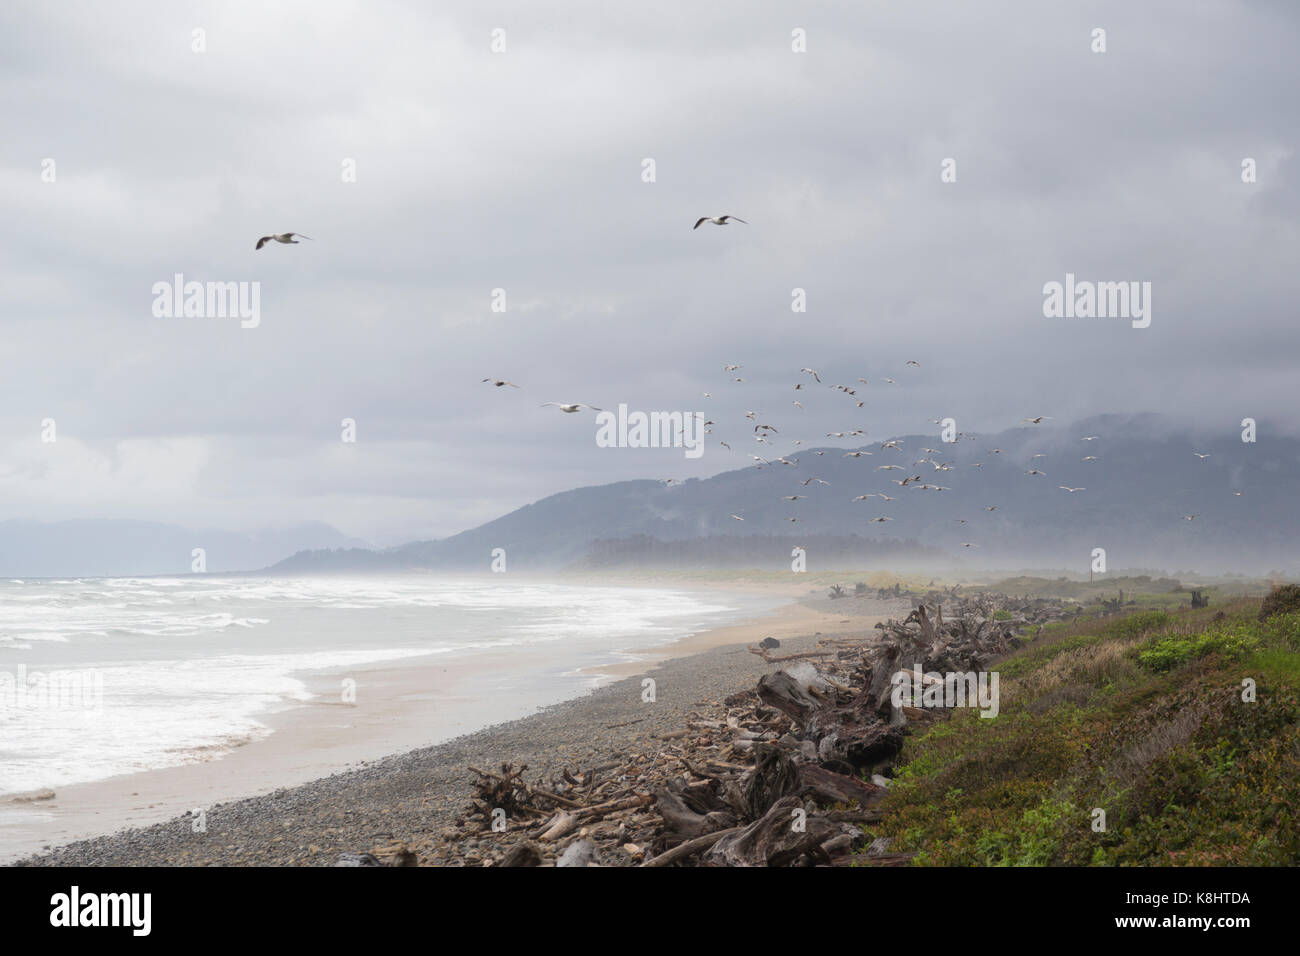 Scenic view of birds flying over beach against cloudy sky Stock Photo